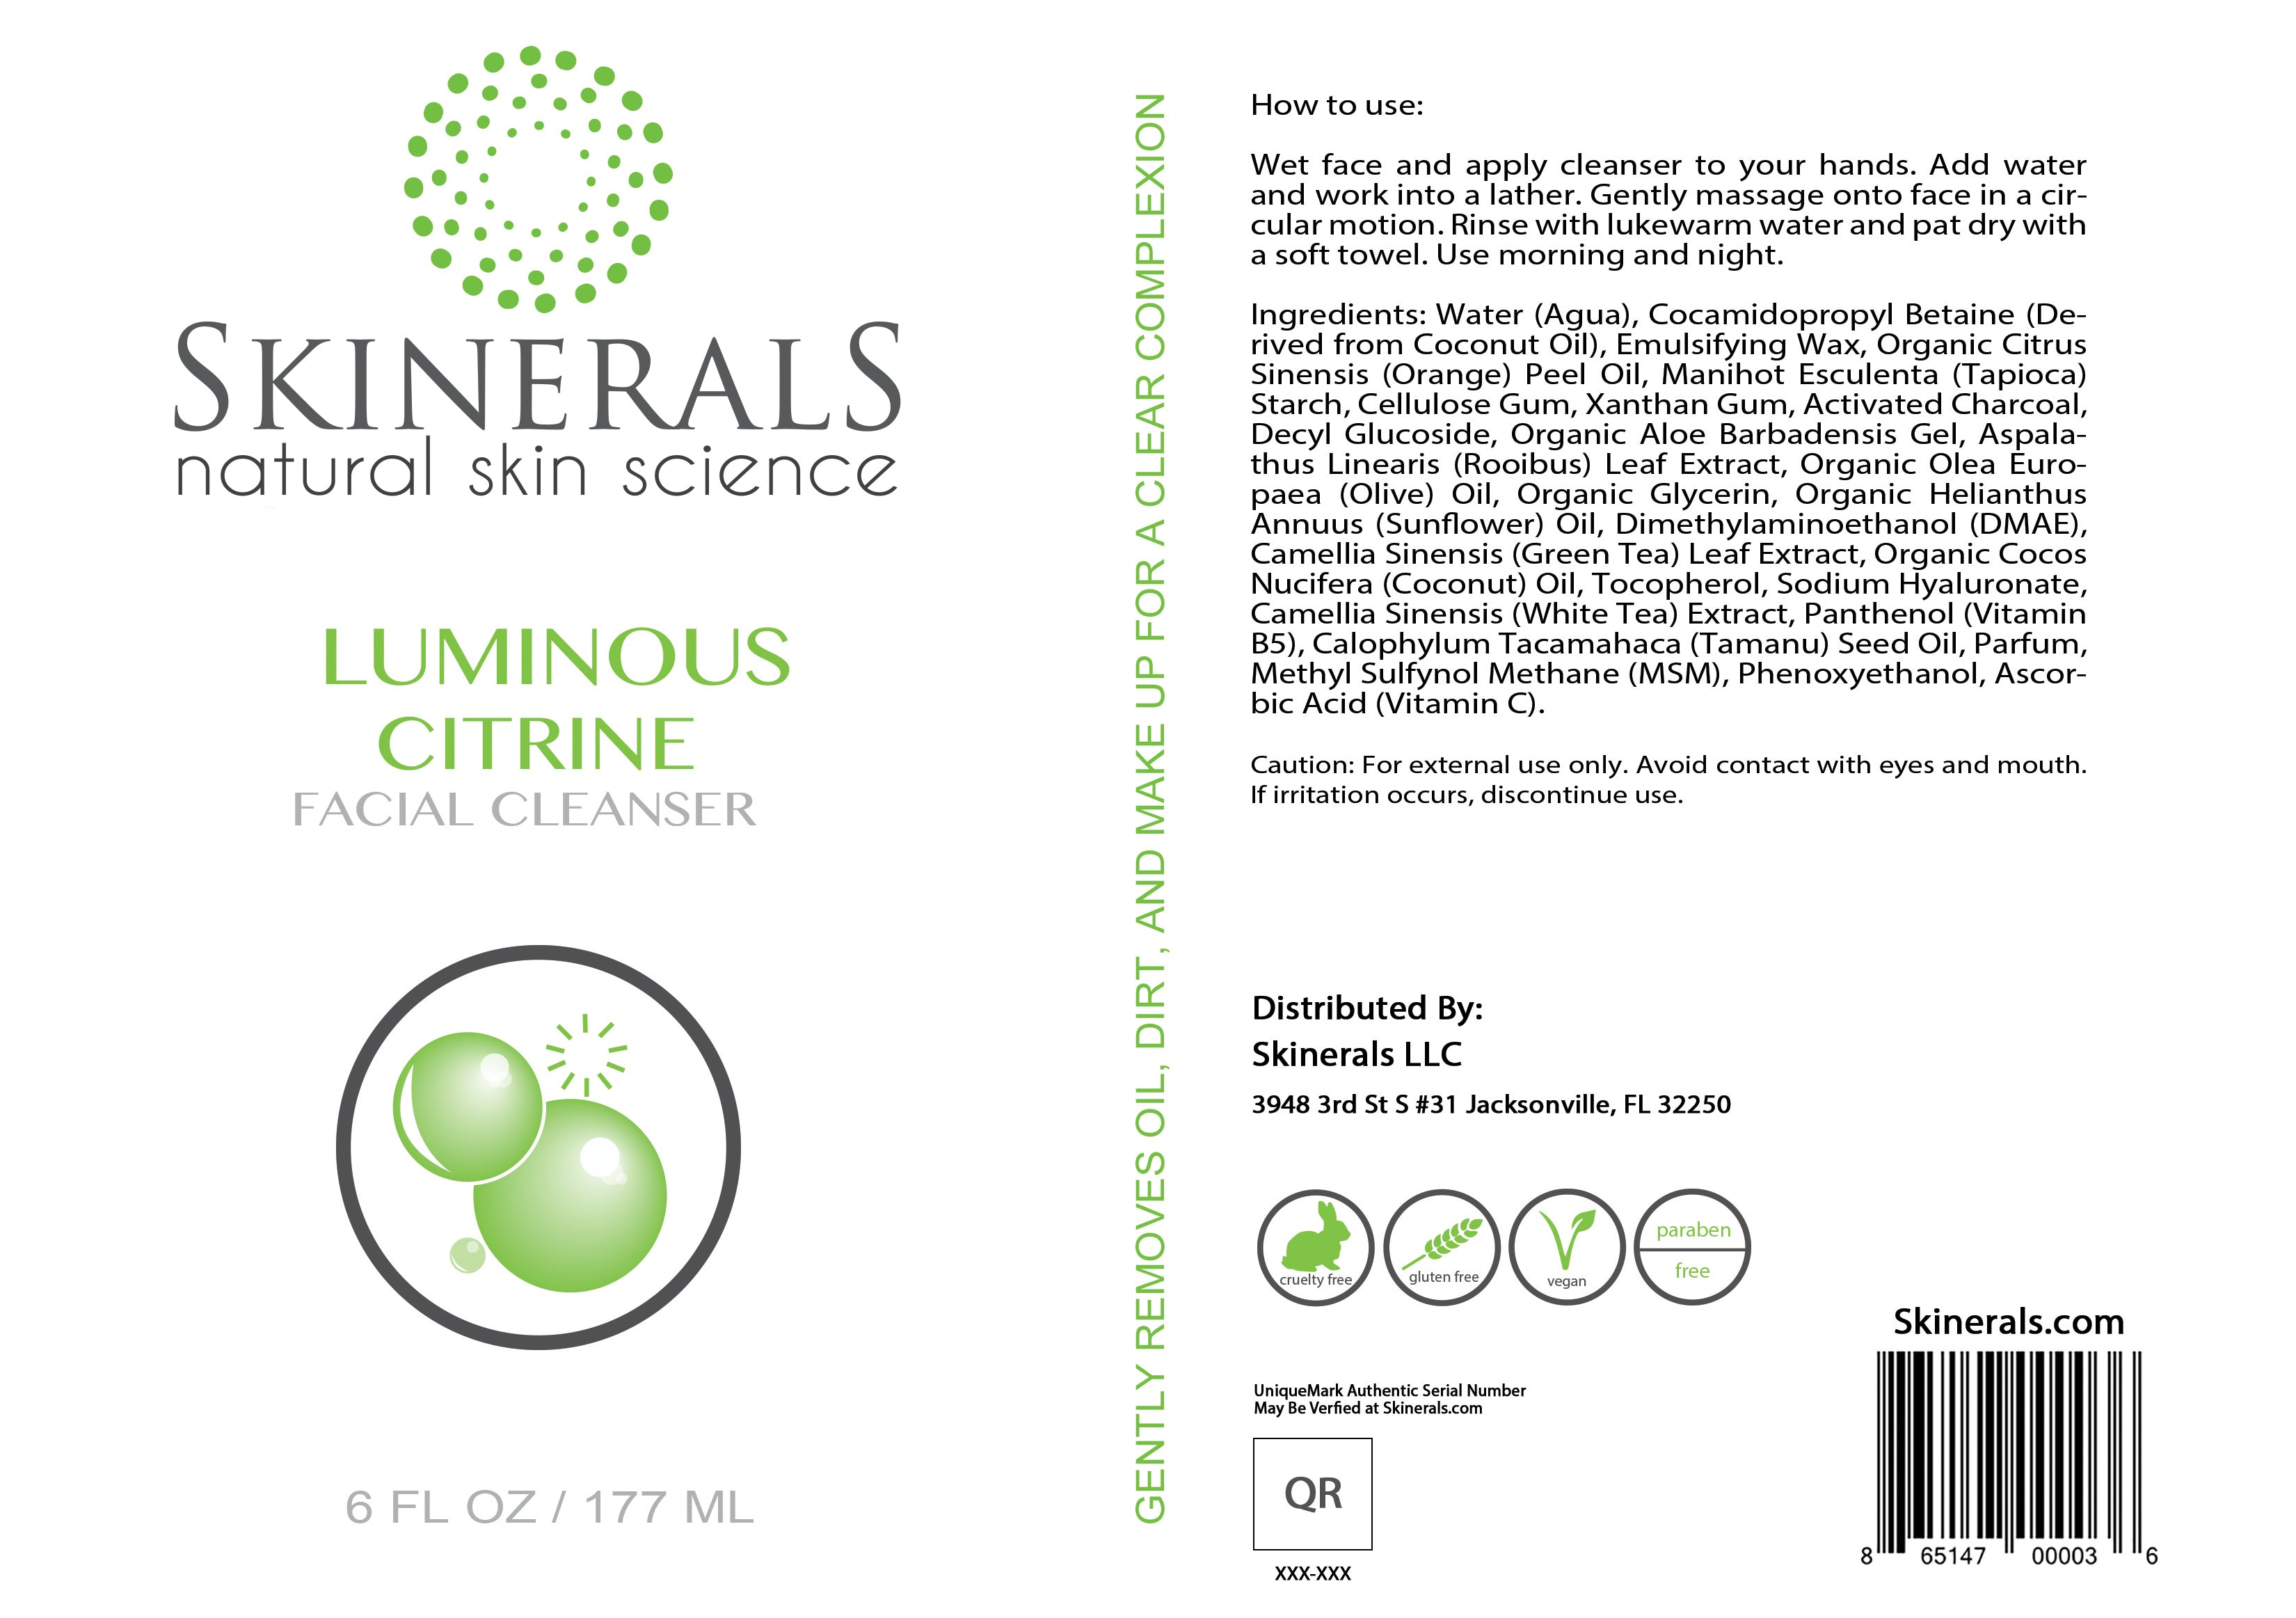 Skinerals Luminous Citrine Facial Cleanser